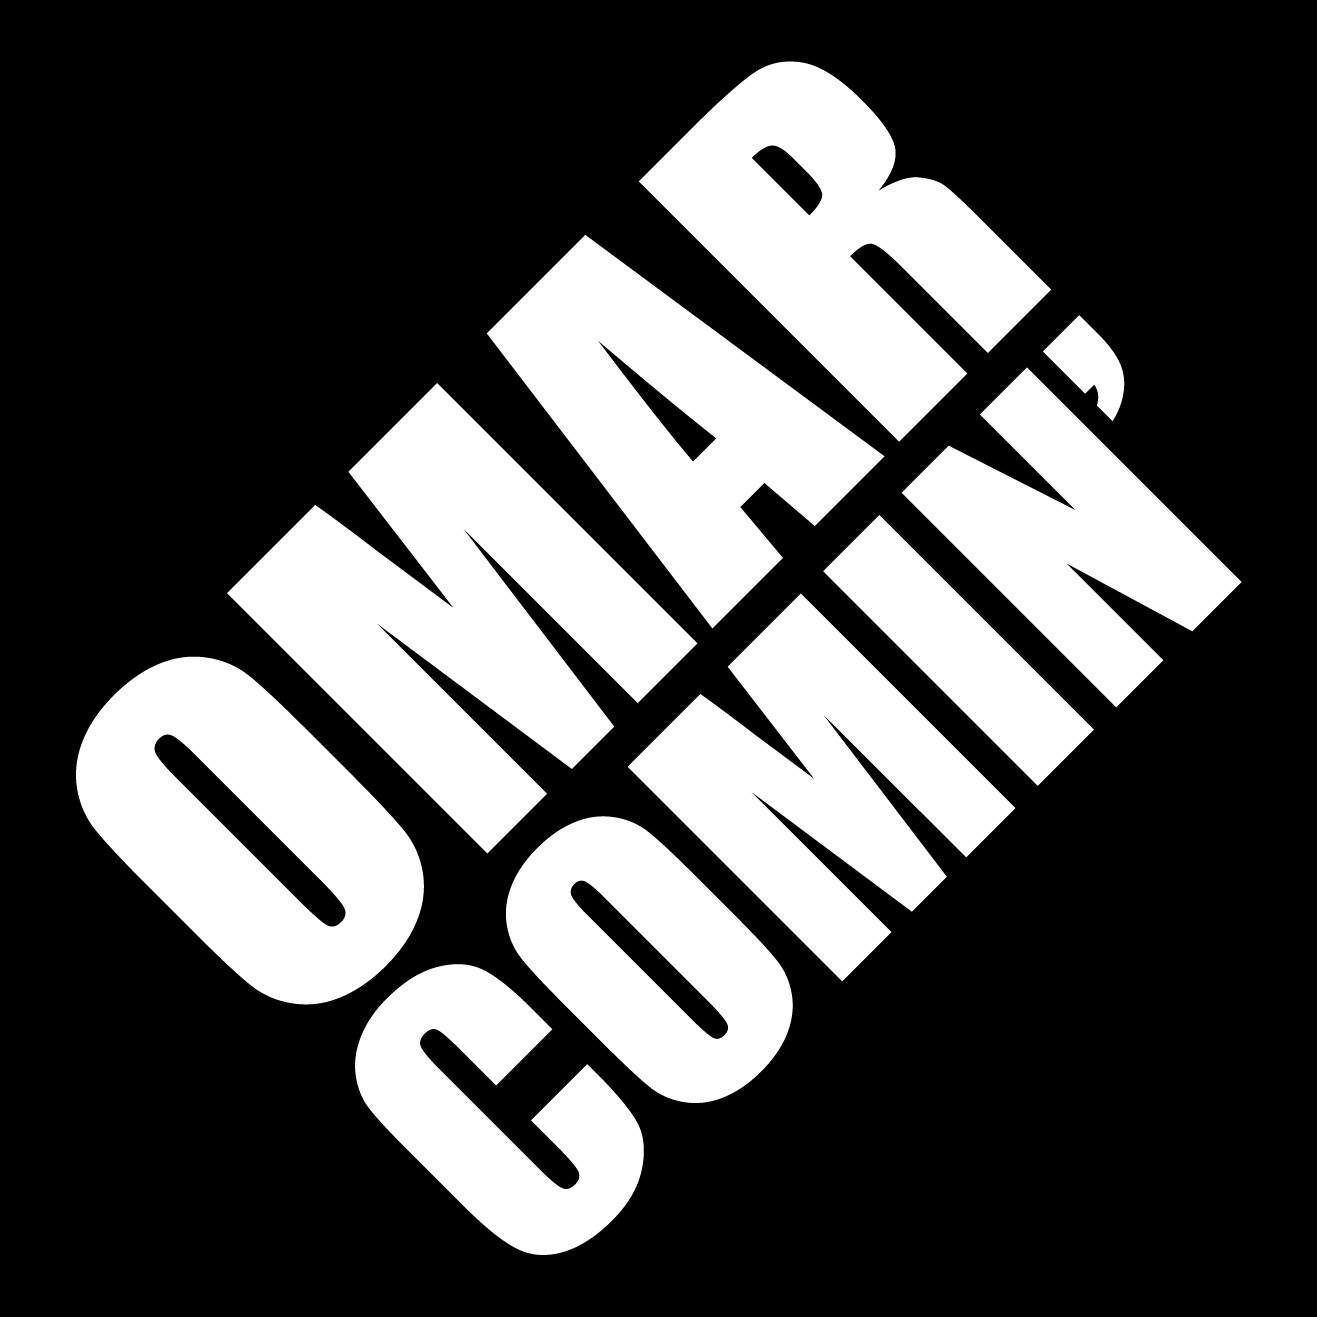 The final version of the Omar Comin' sticker